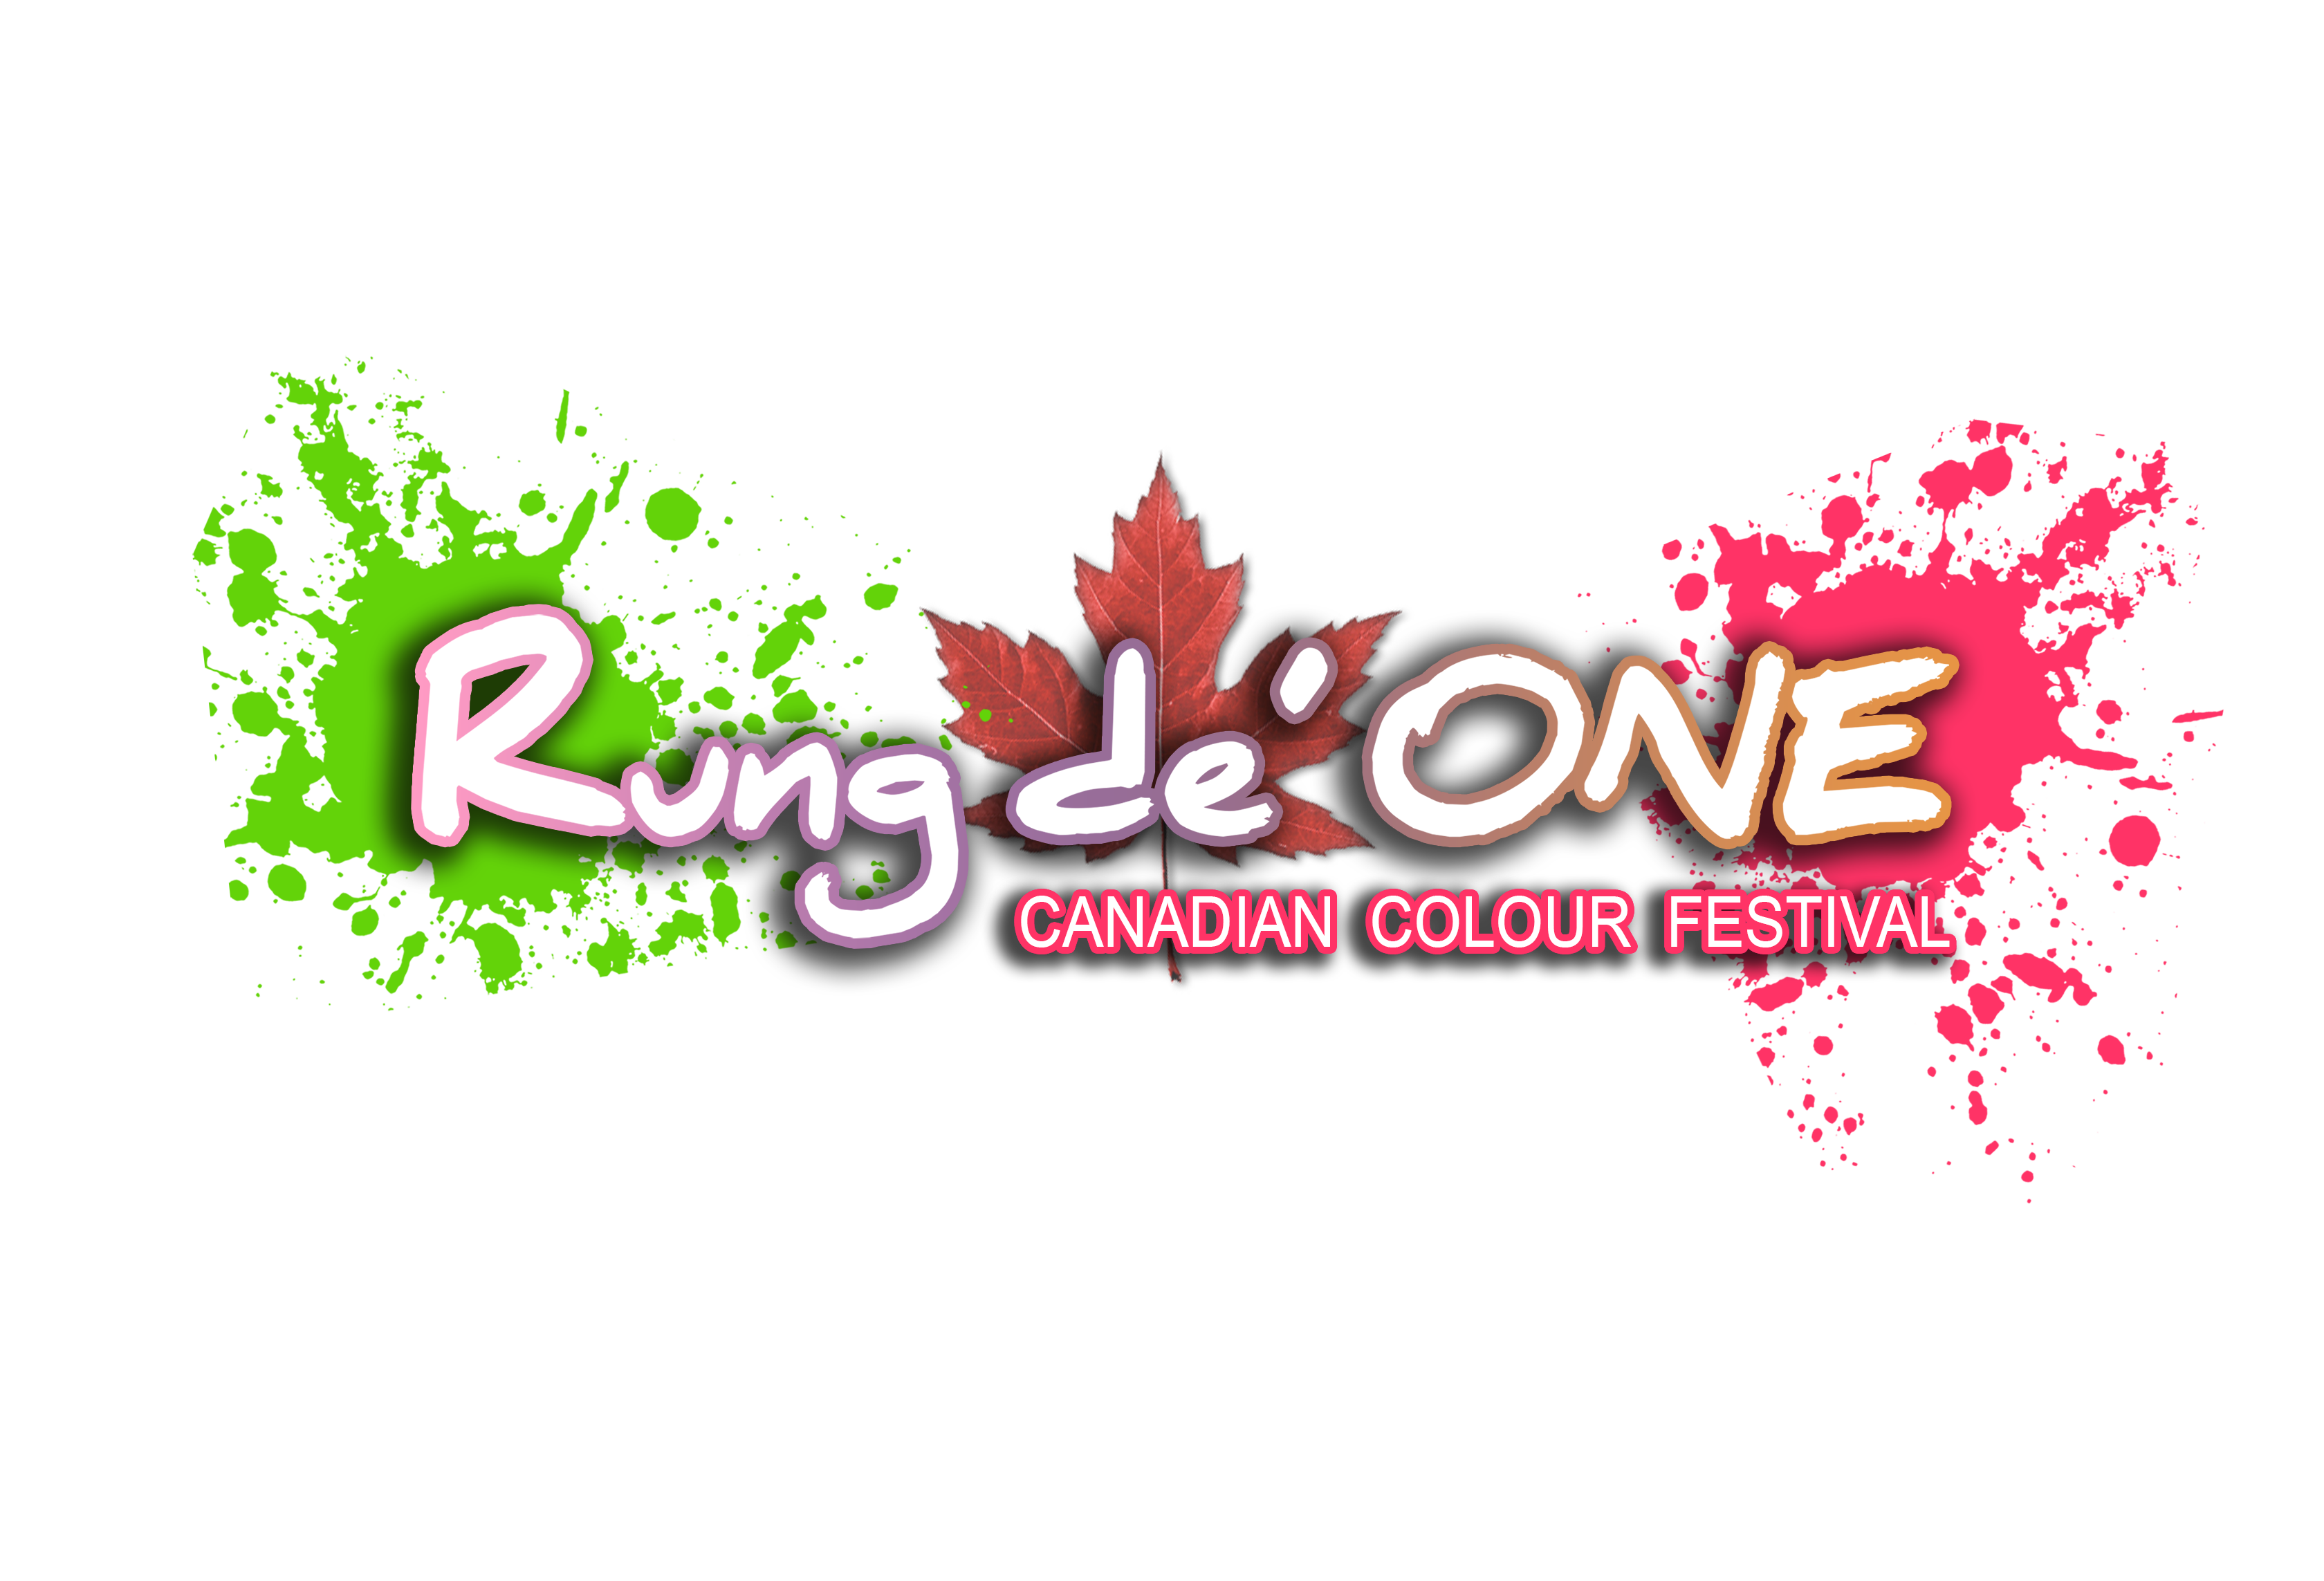 Canadian Colour Festival #RungDeONE